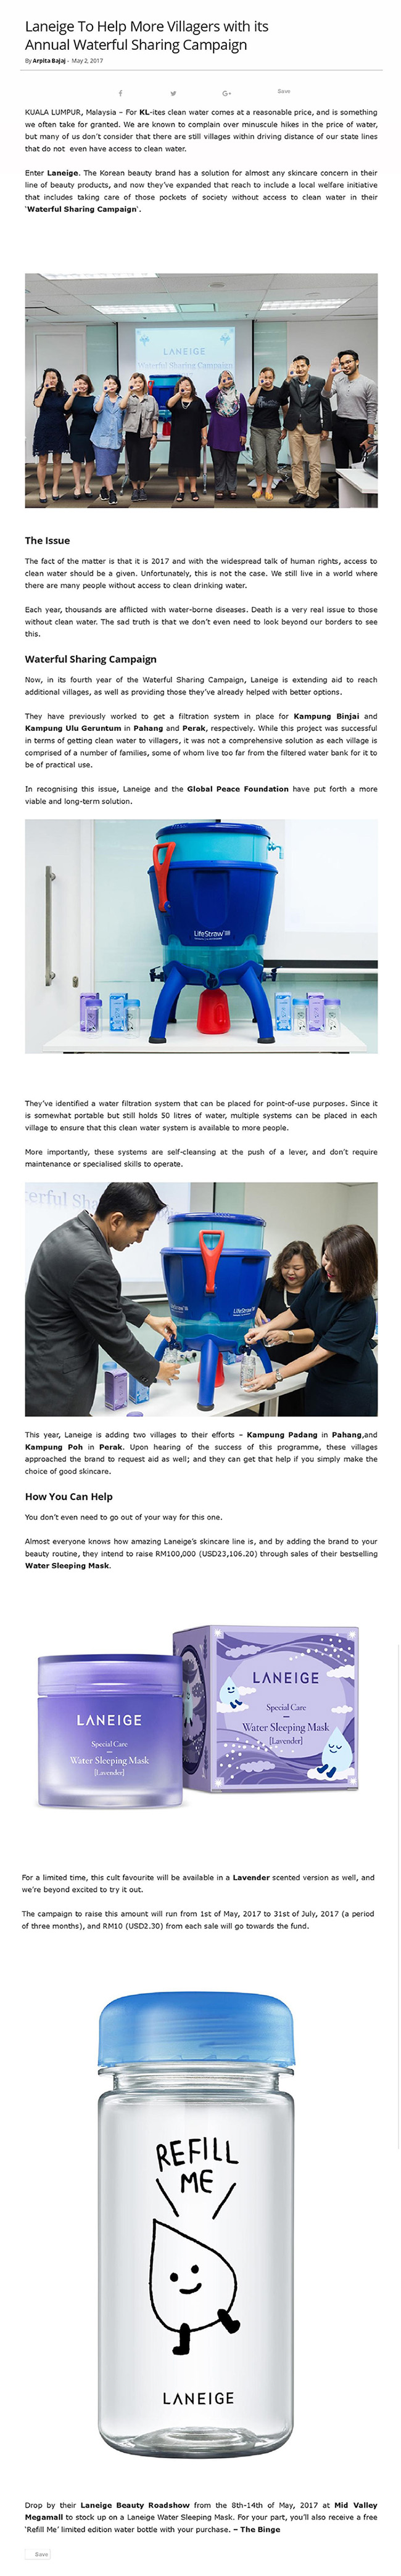 laneige-to-help-more-annual-waterful-sharing-campaign/